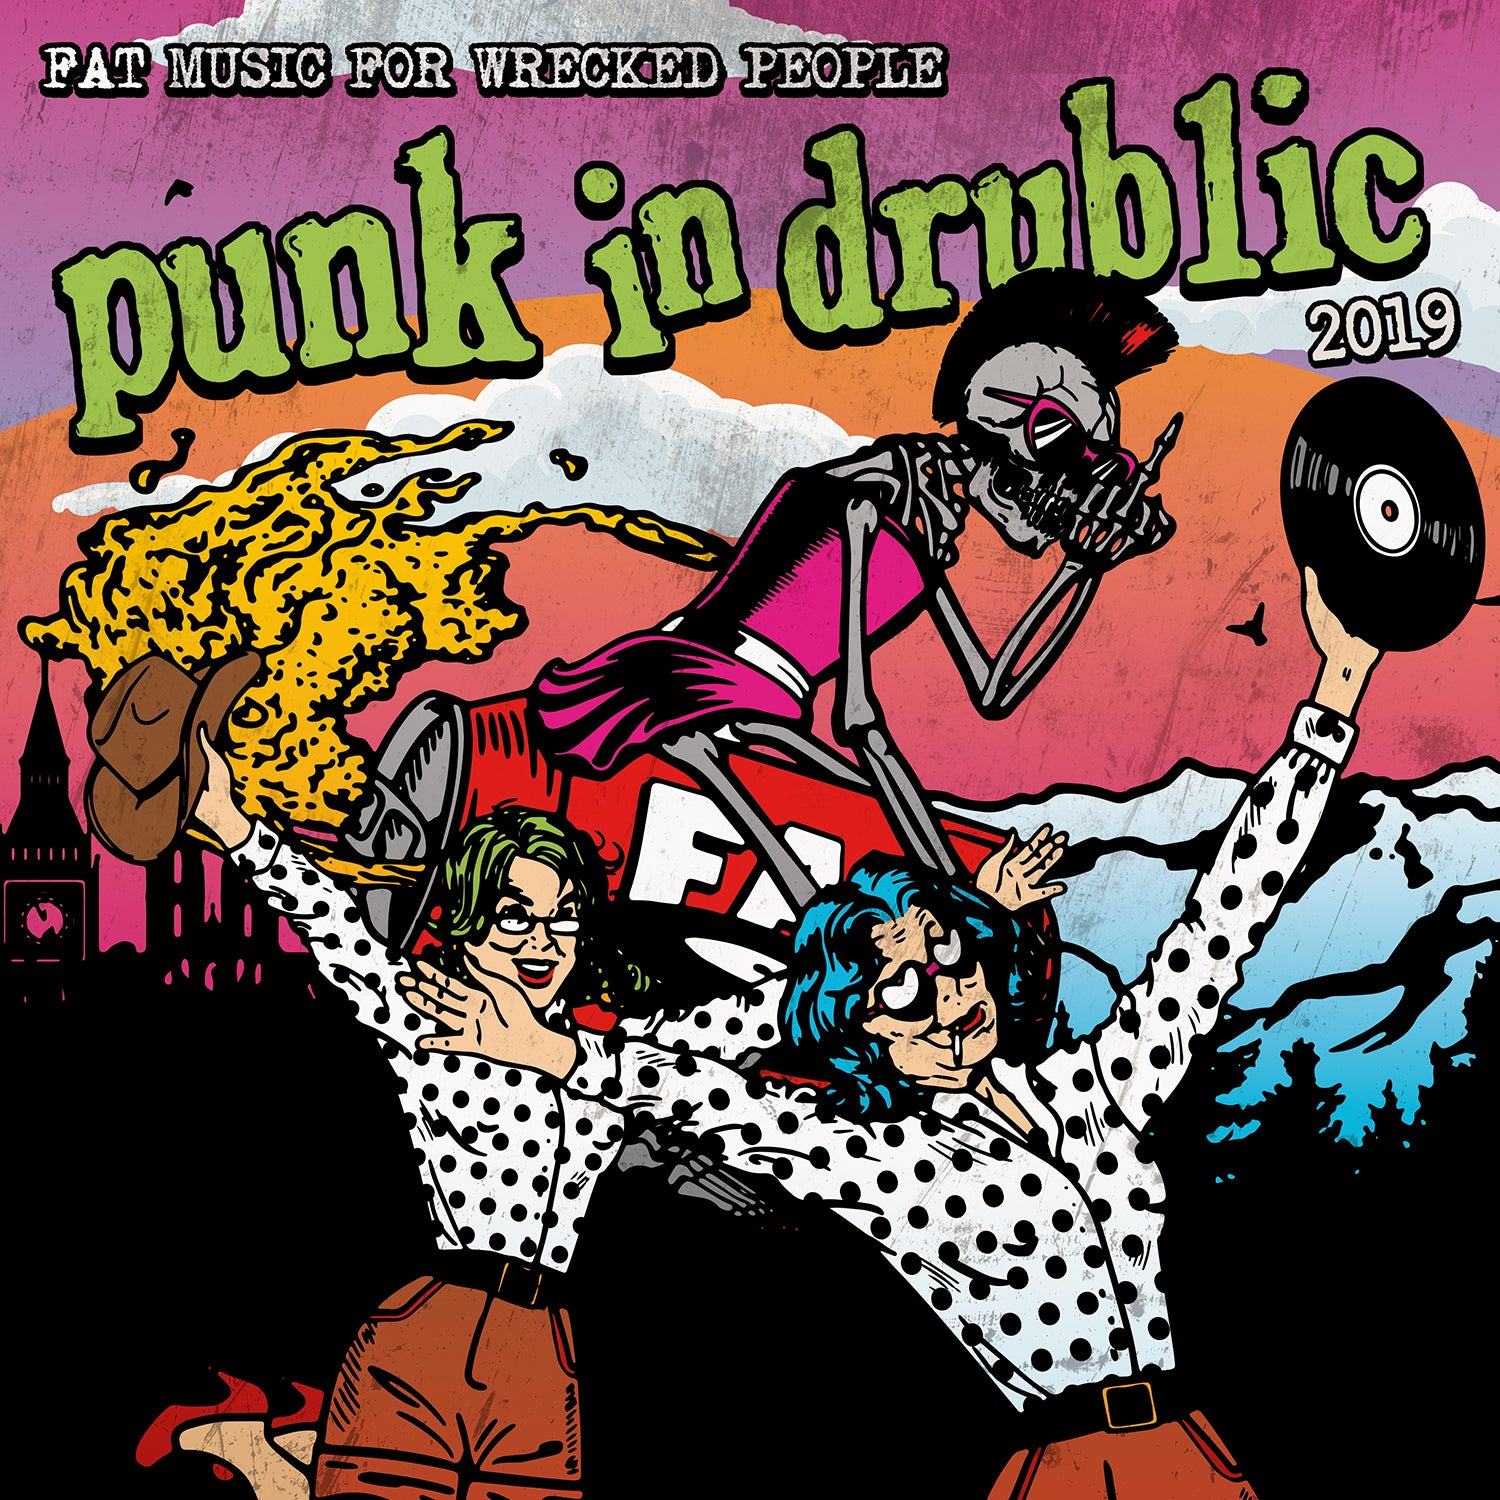 Fat Music For Wrecked People: Punk In Drublic 2019